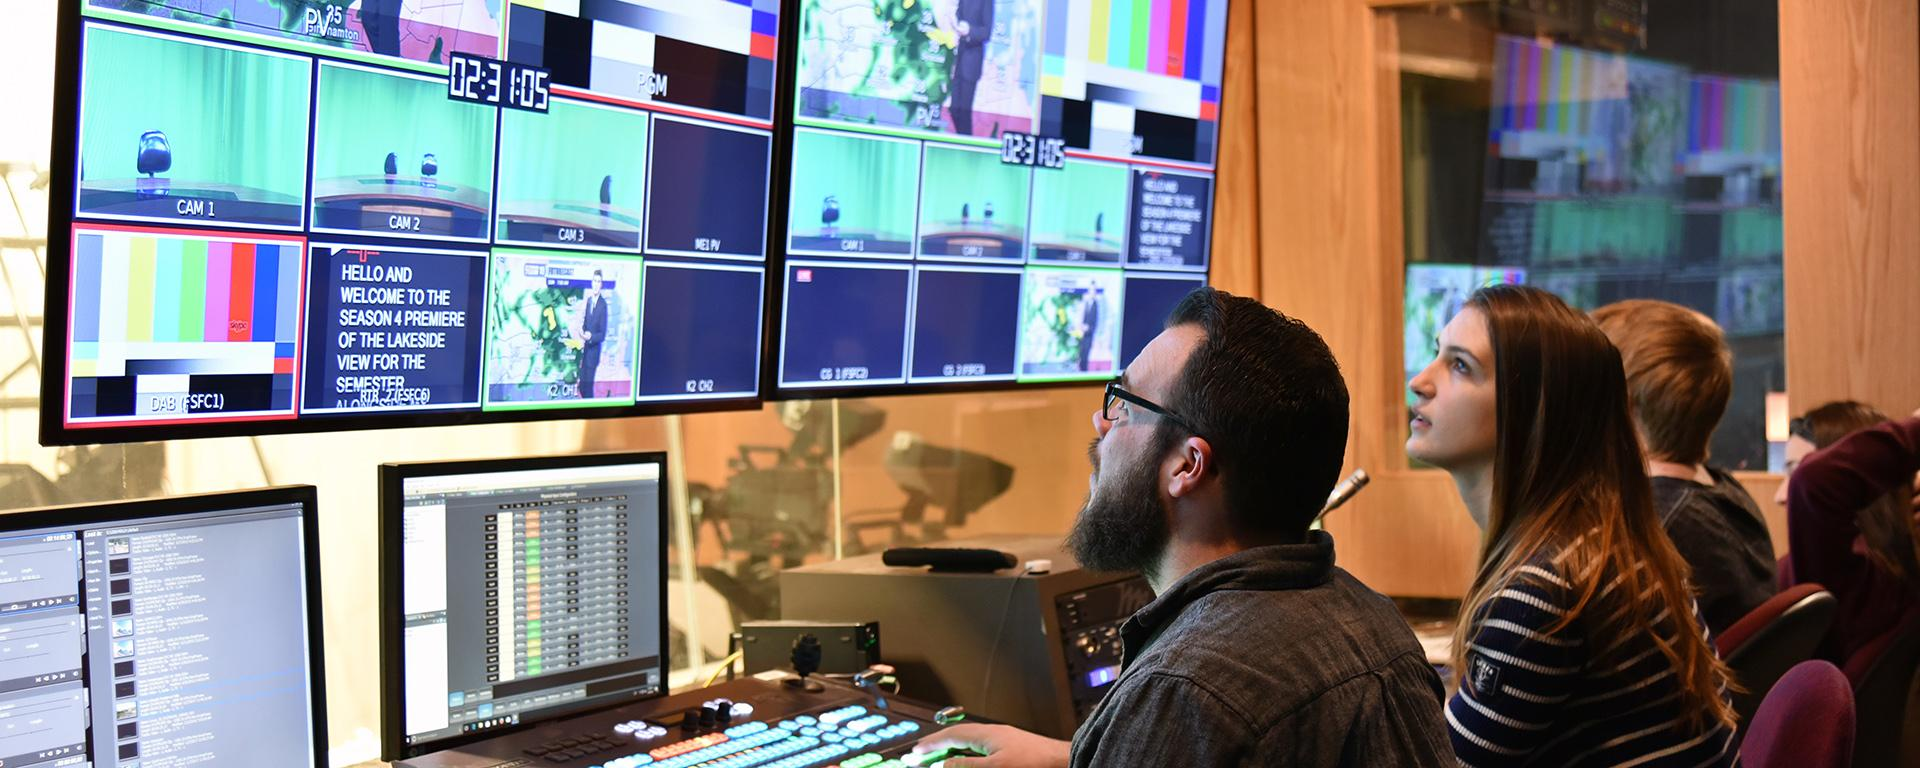 Students work in an advanced TV studio